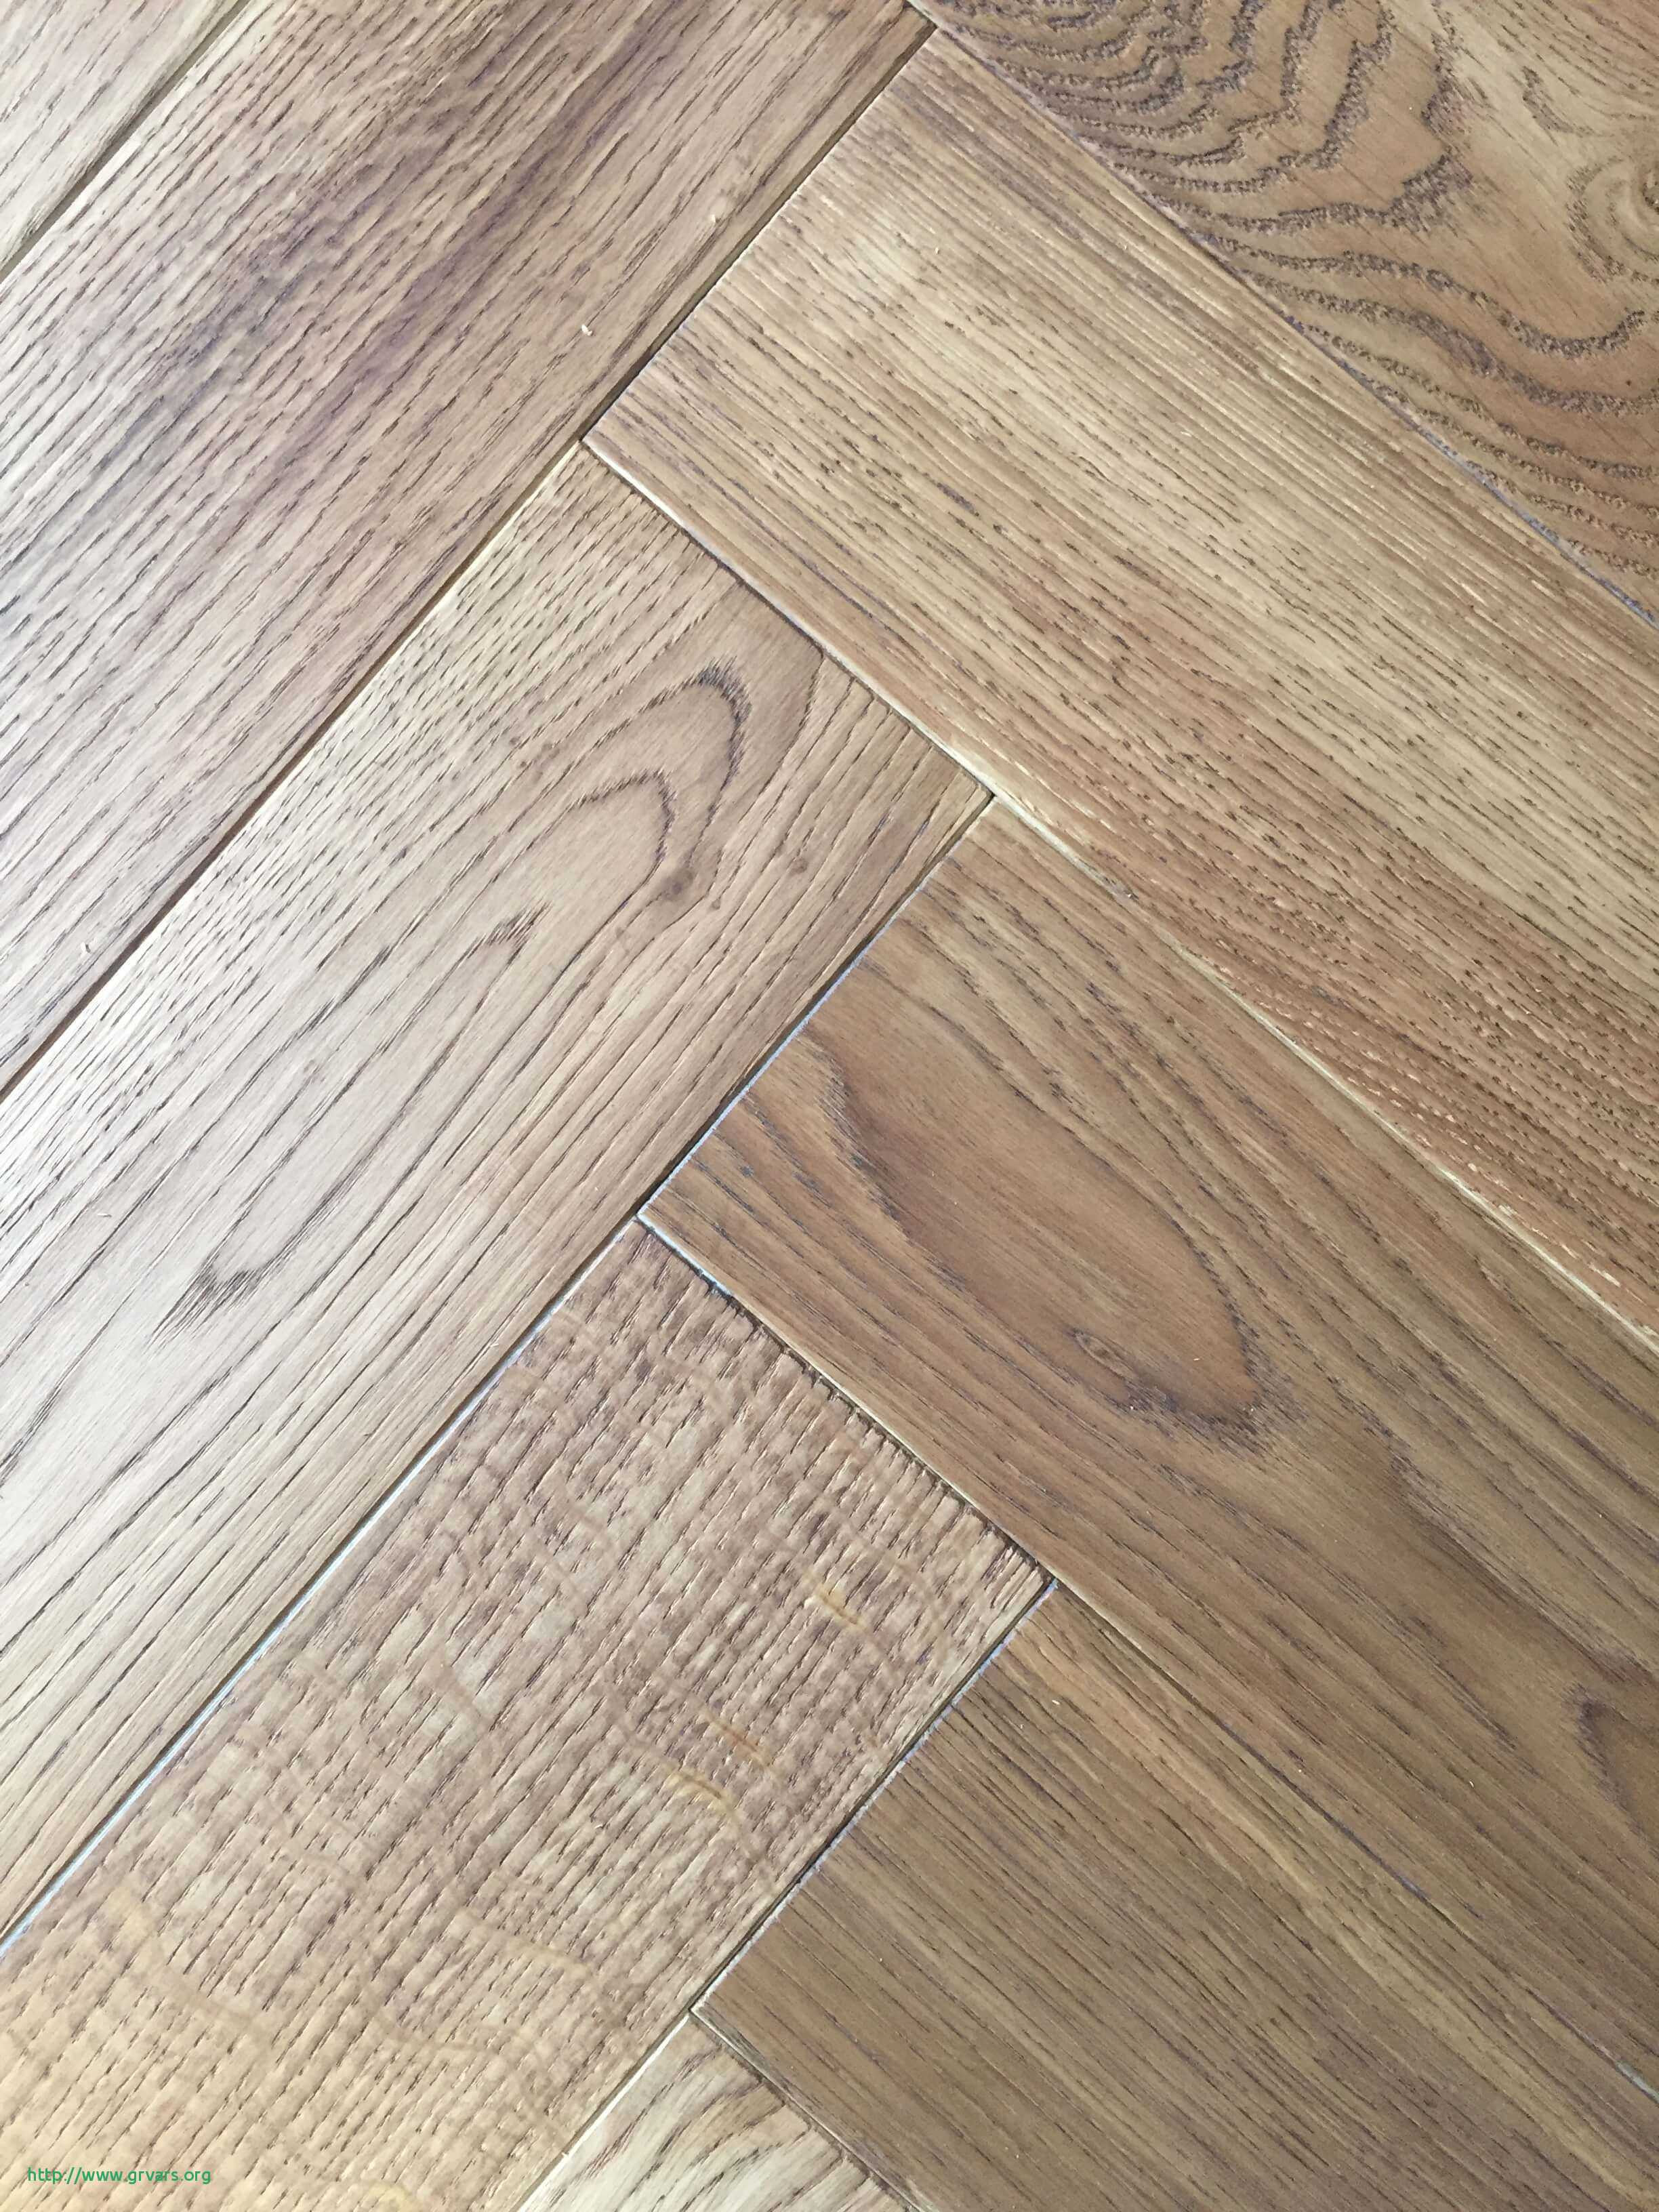 how to calculate hardwood flooring square footage of 21 inspirant lament flooring ideas blog pertaining to lament flooring nouveau laminate flooring ideas